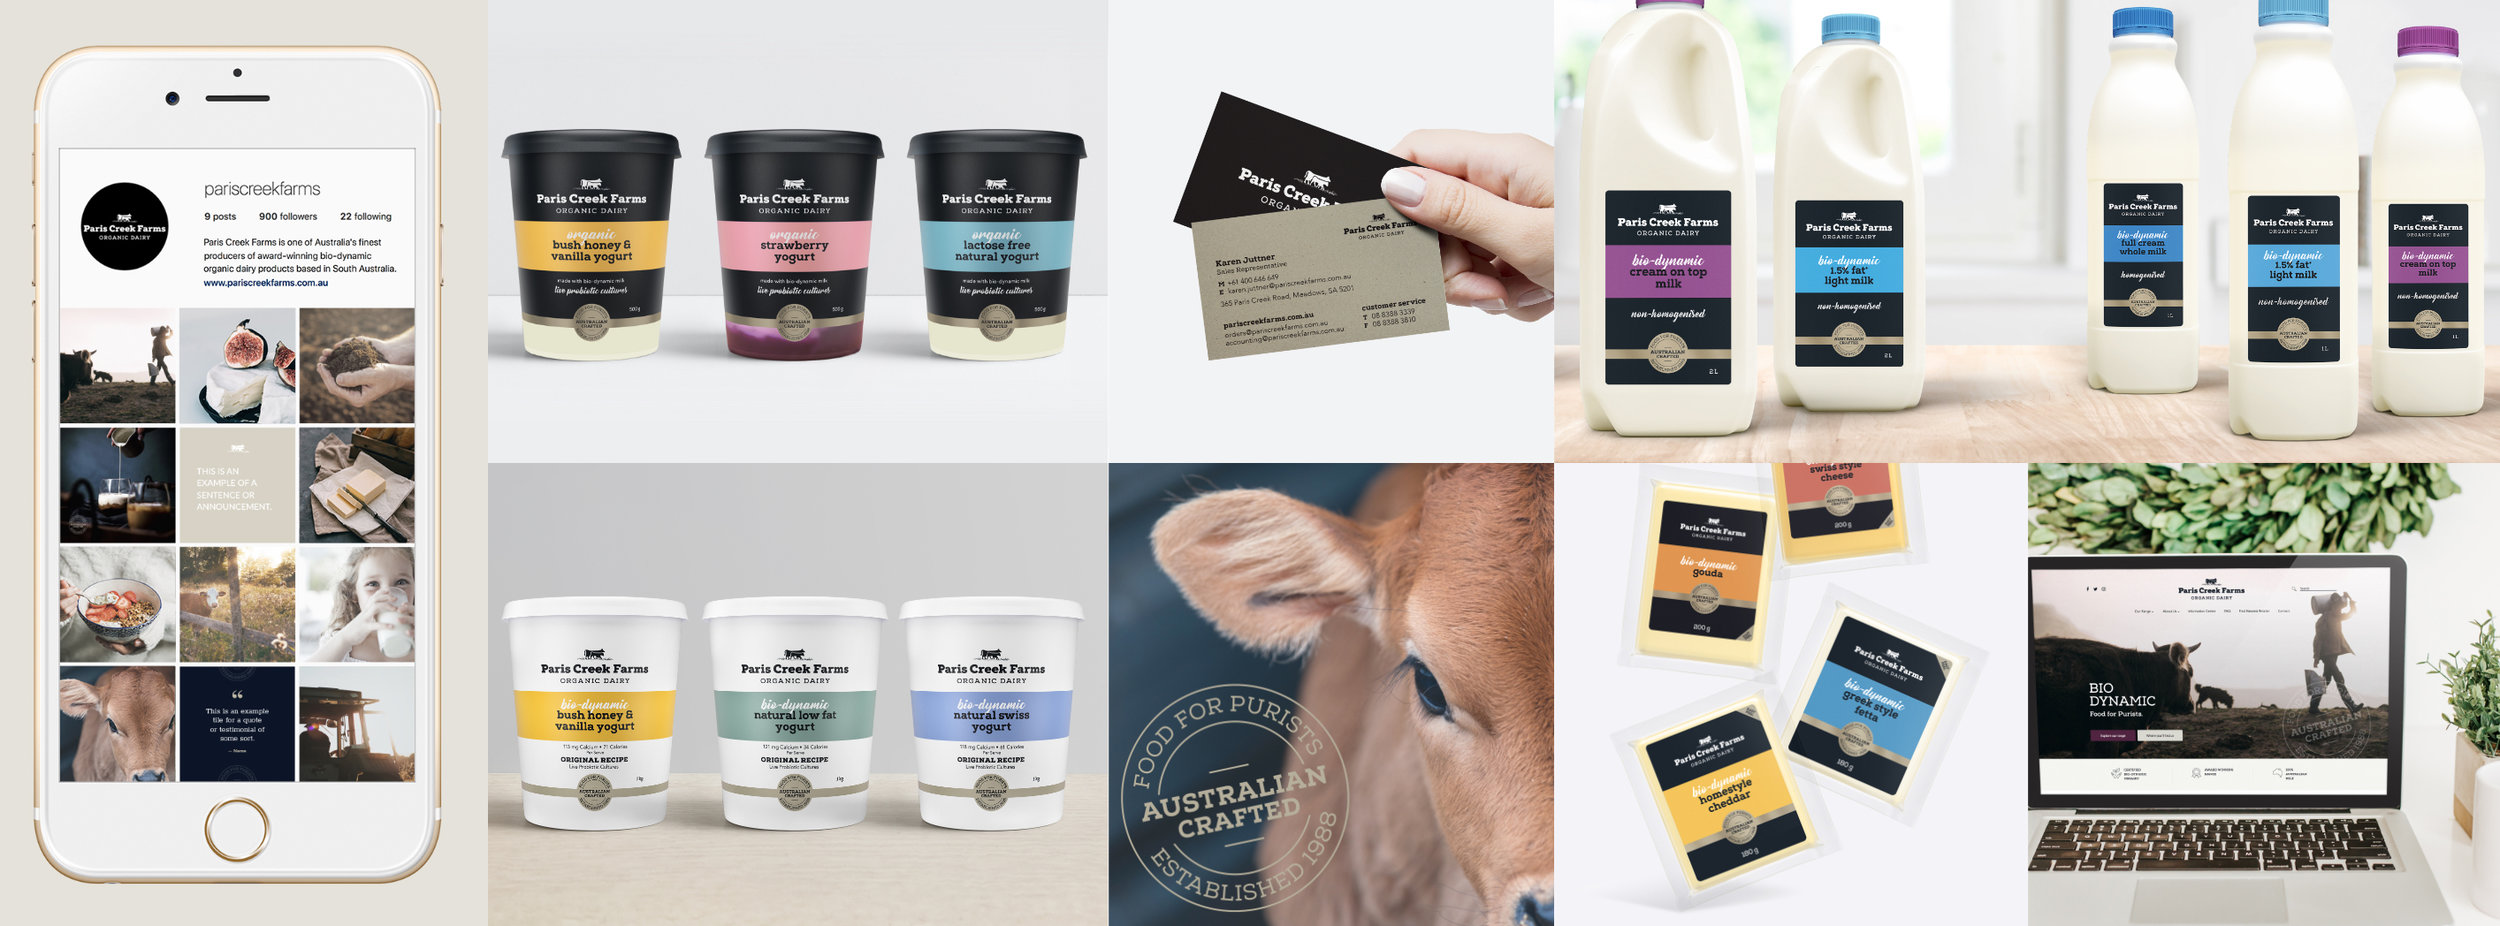 Paris Creek Farms Rebrand